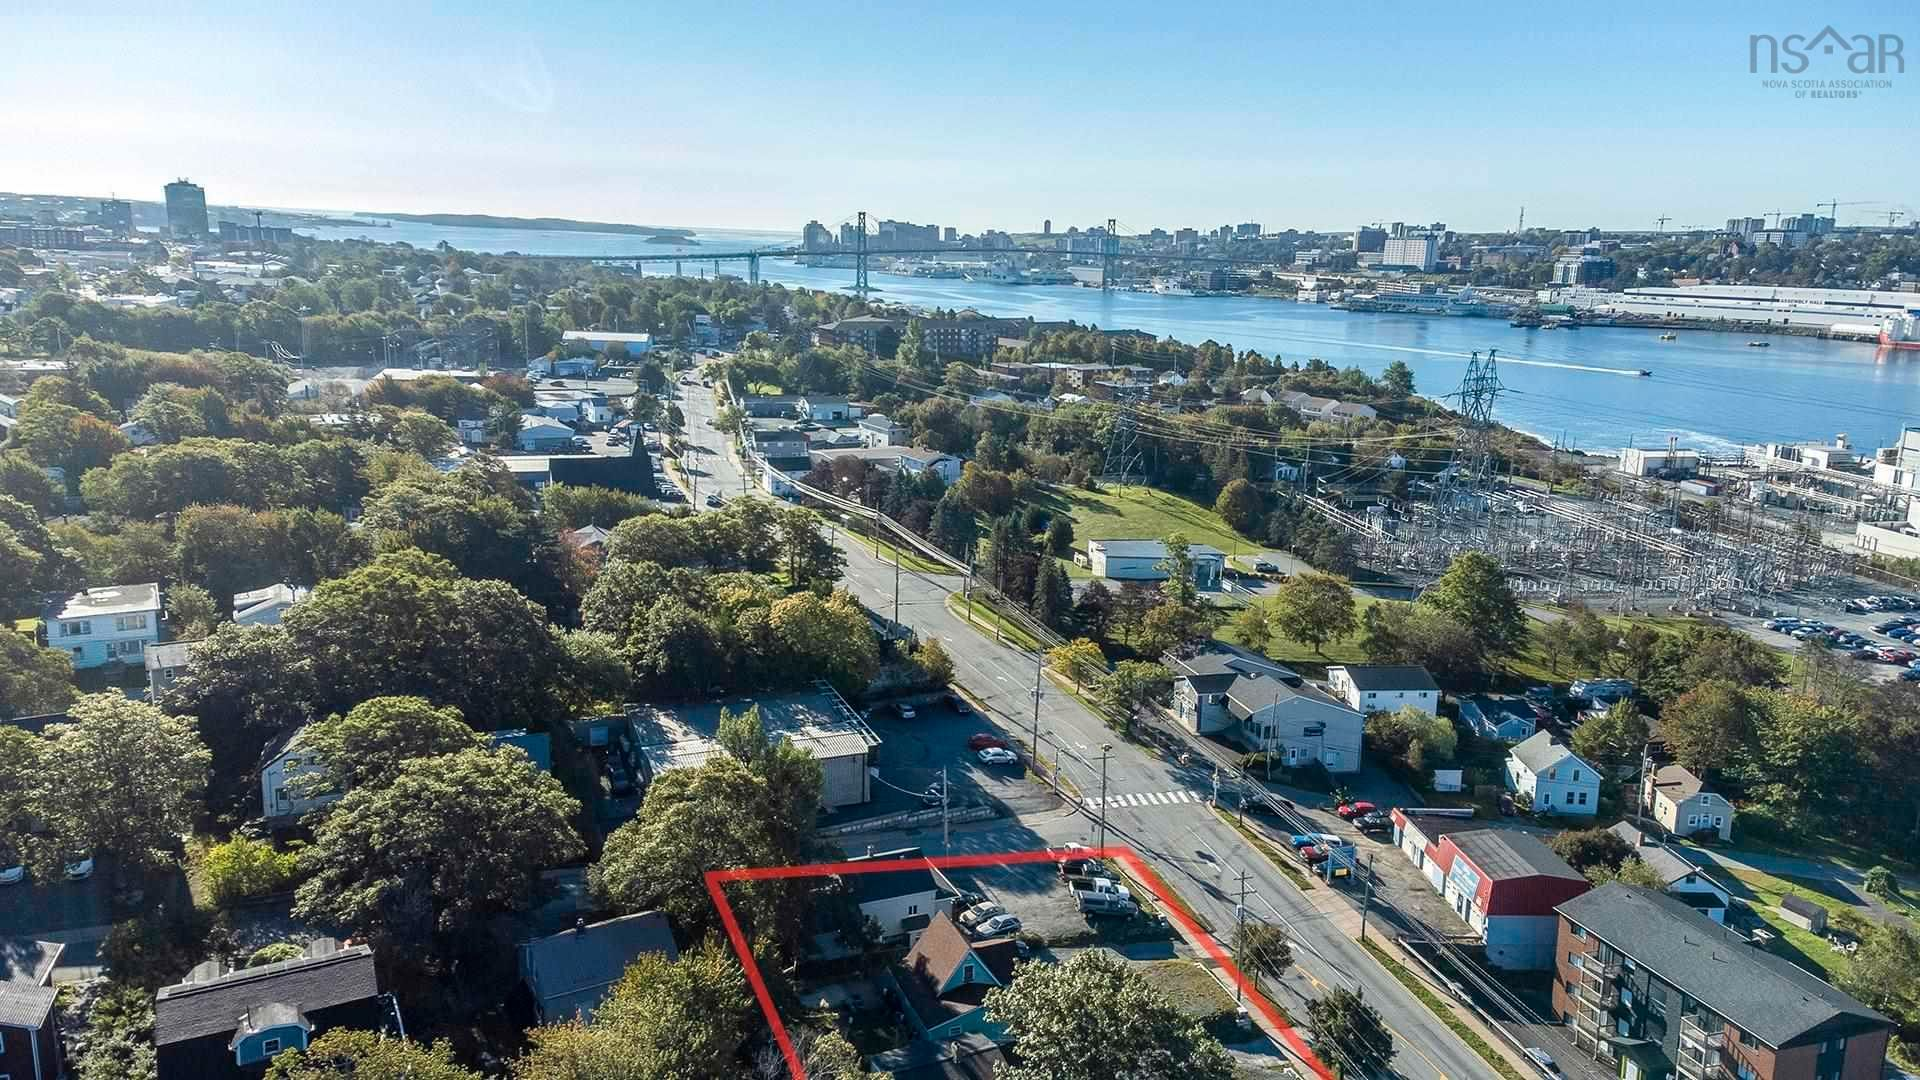 Main Photo: 330/332/334 Windmill Road in Dartmouth: 10-Dartmouth Downtown To Burnside Vacant Land for sale (Halifax-Dartmouth)  : MLS®# 202125777